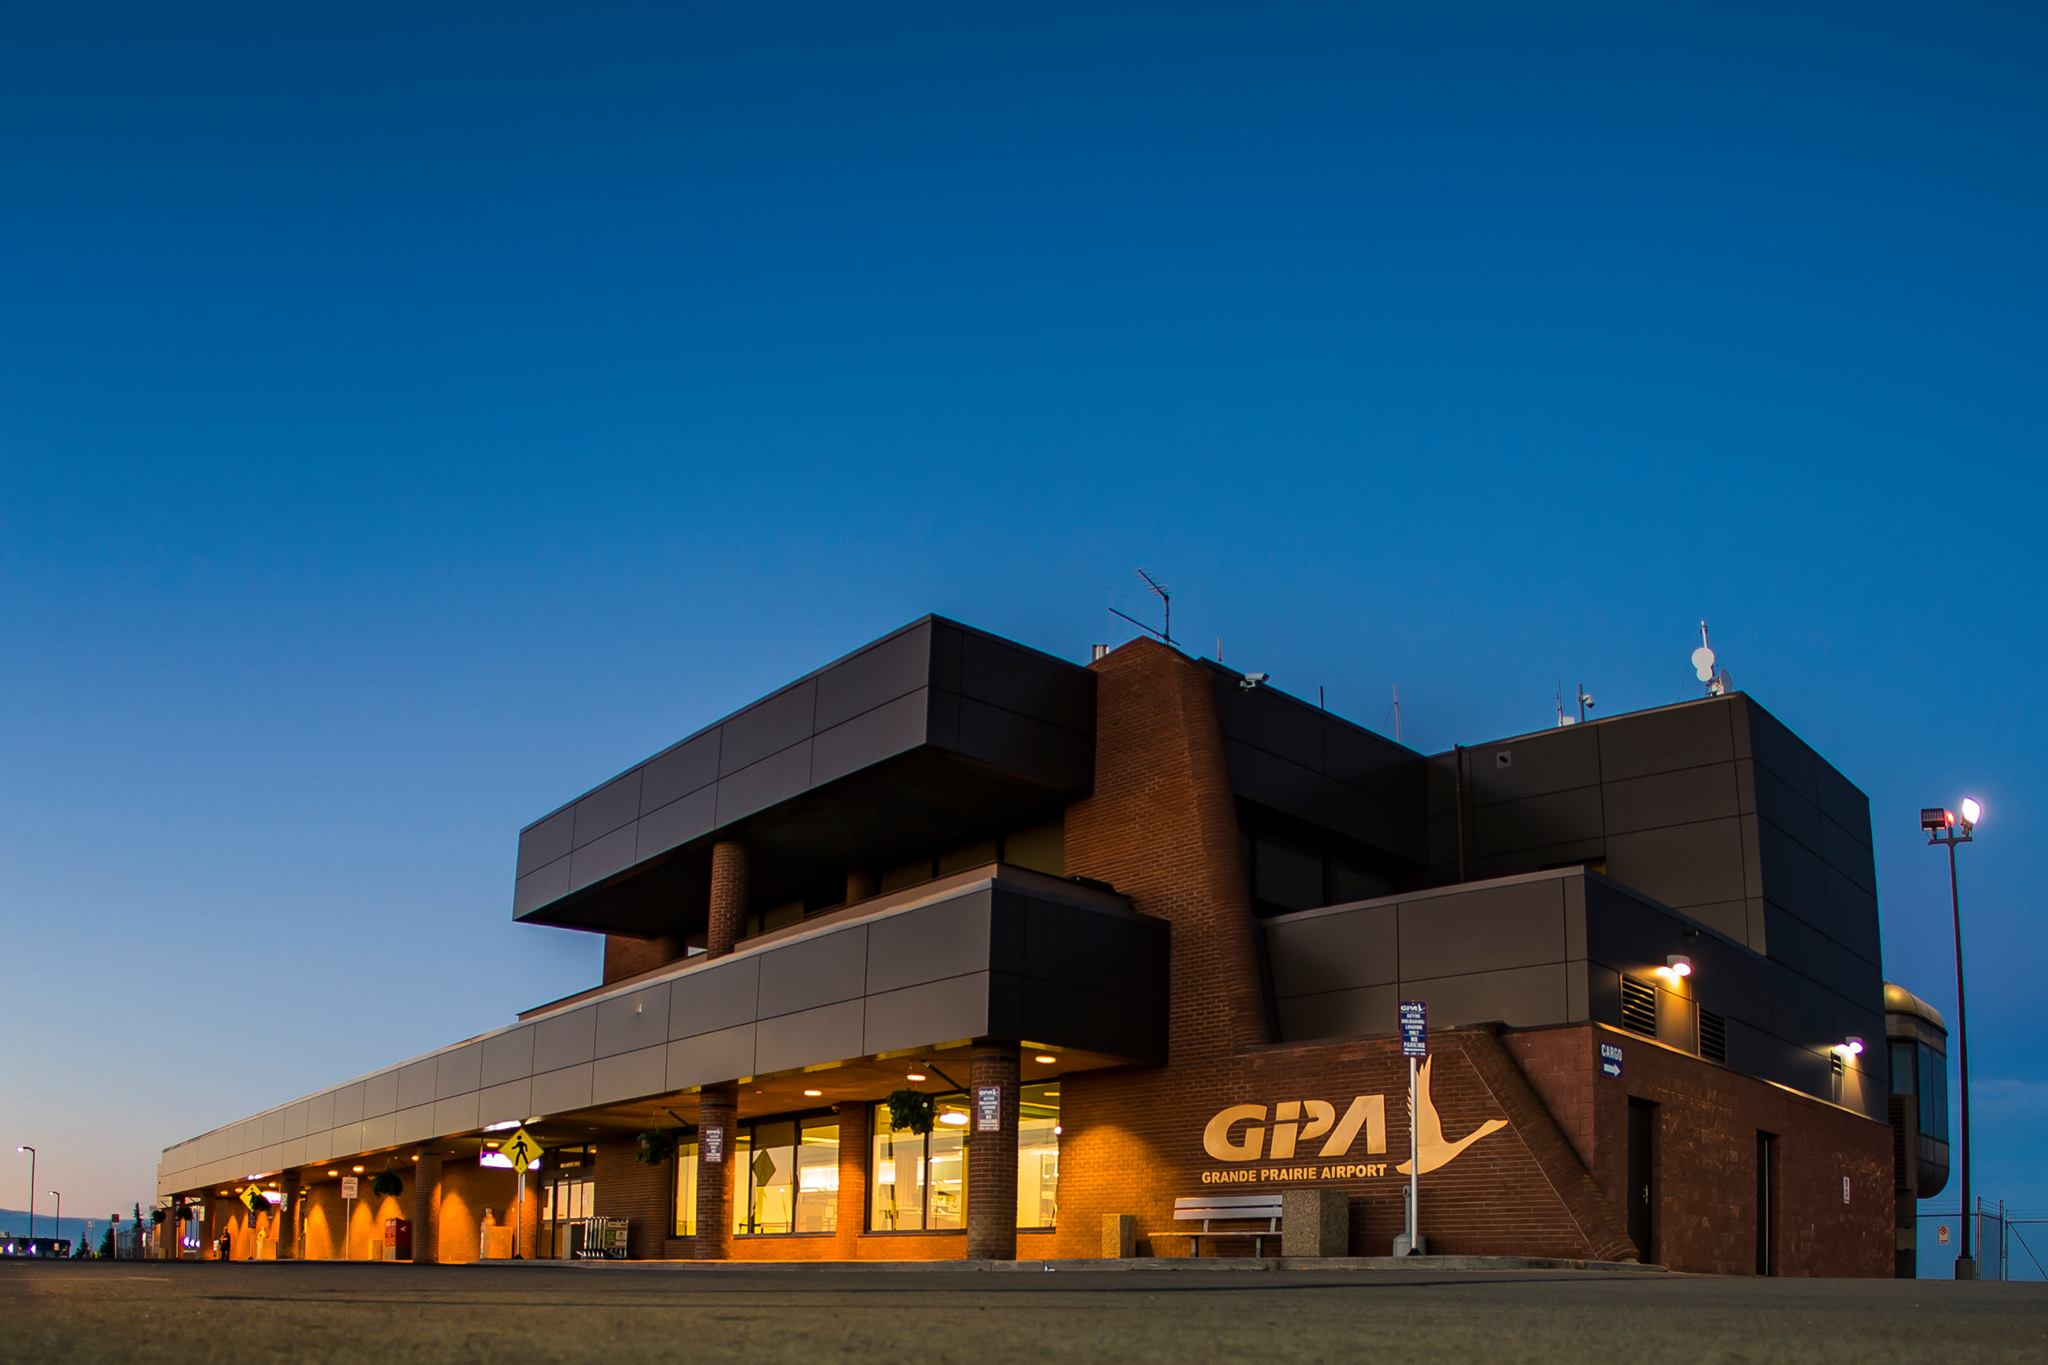 Increased wait times at Grande Prairie Airport